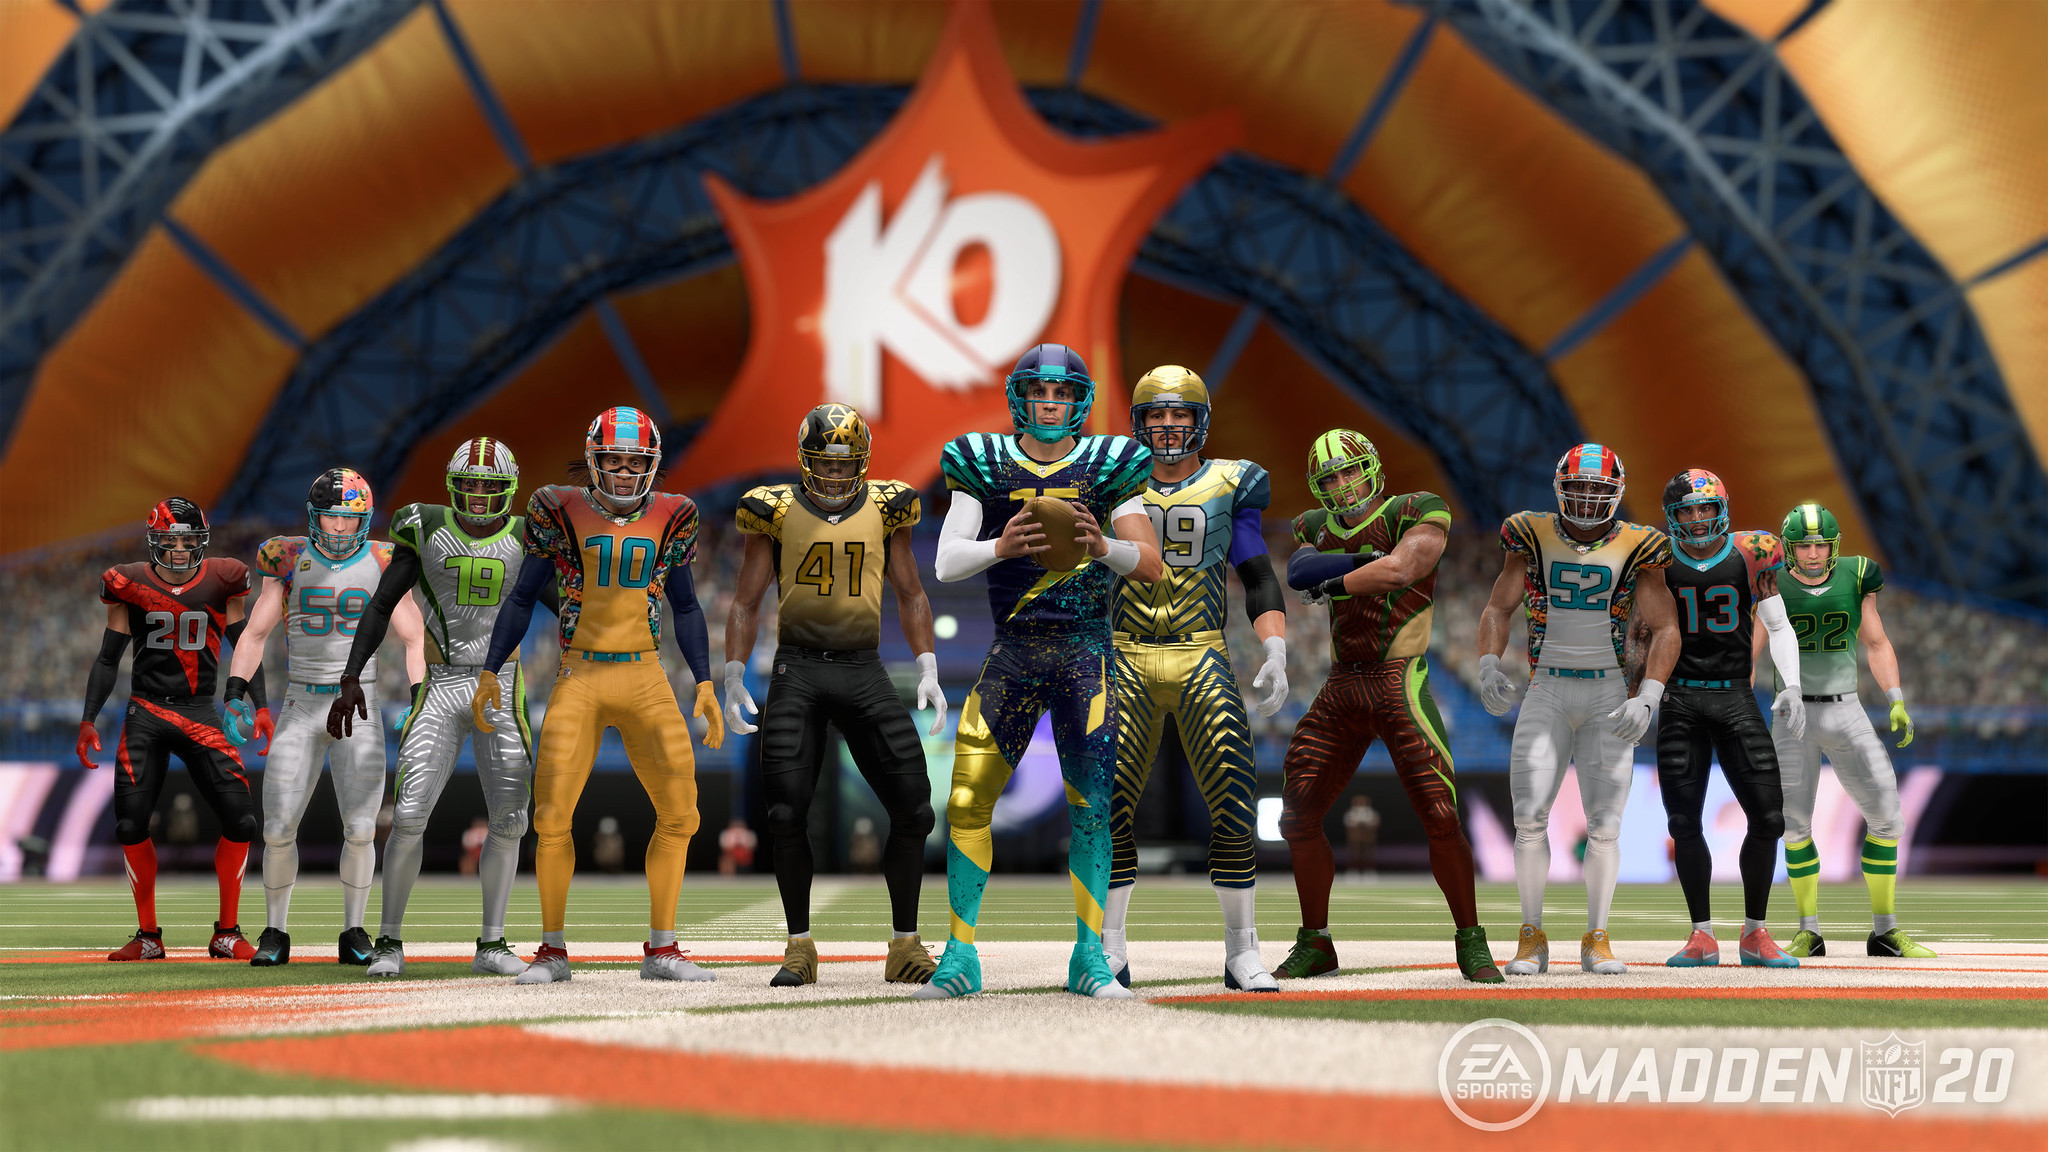 Madden NFL 20: Superstar KO Mode on PS4